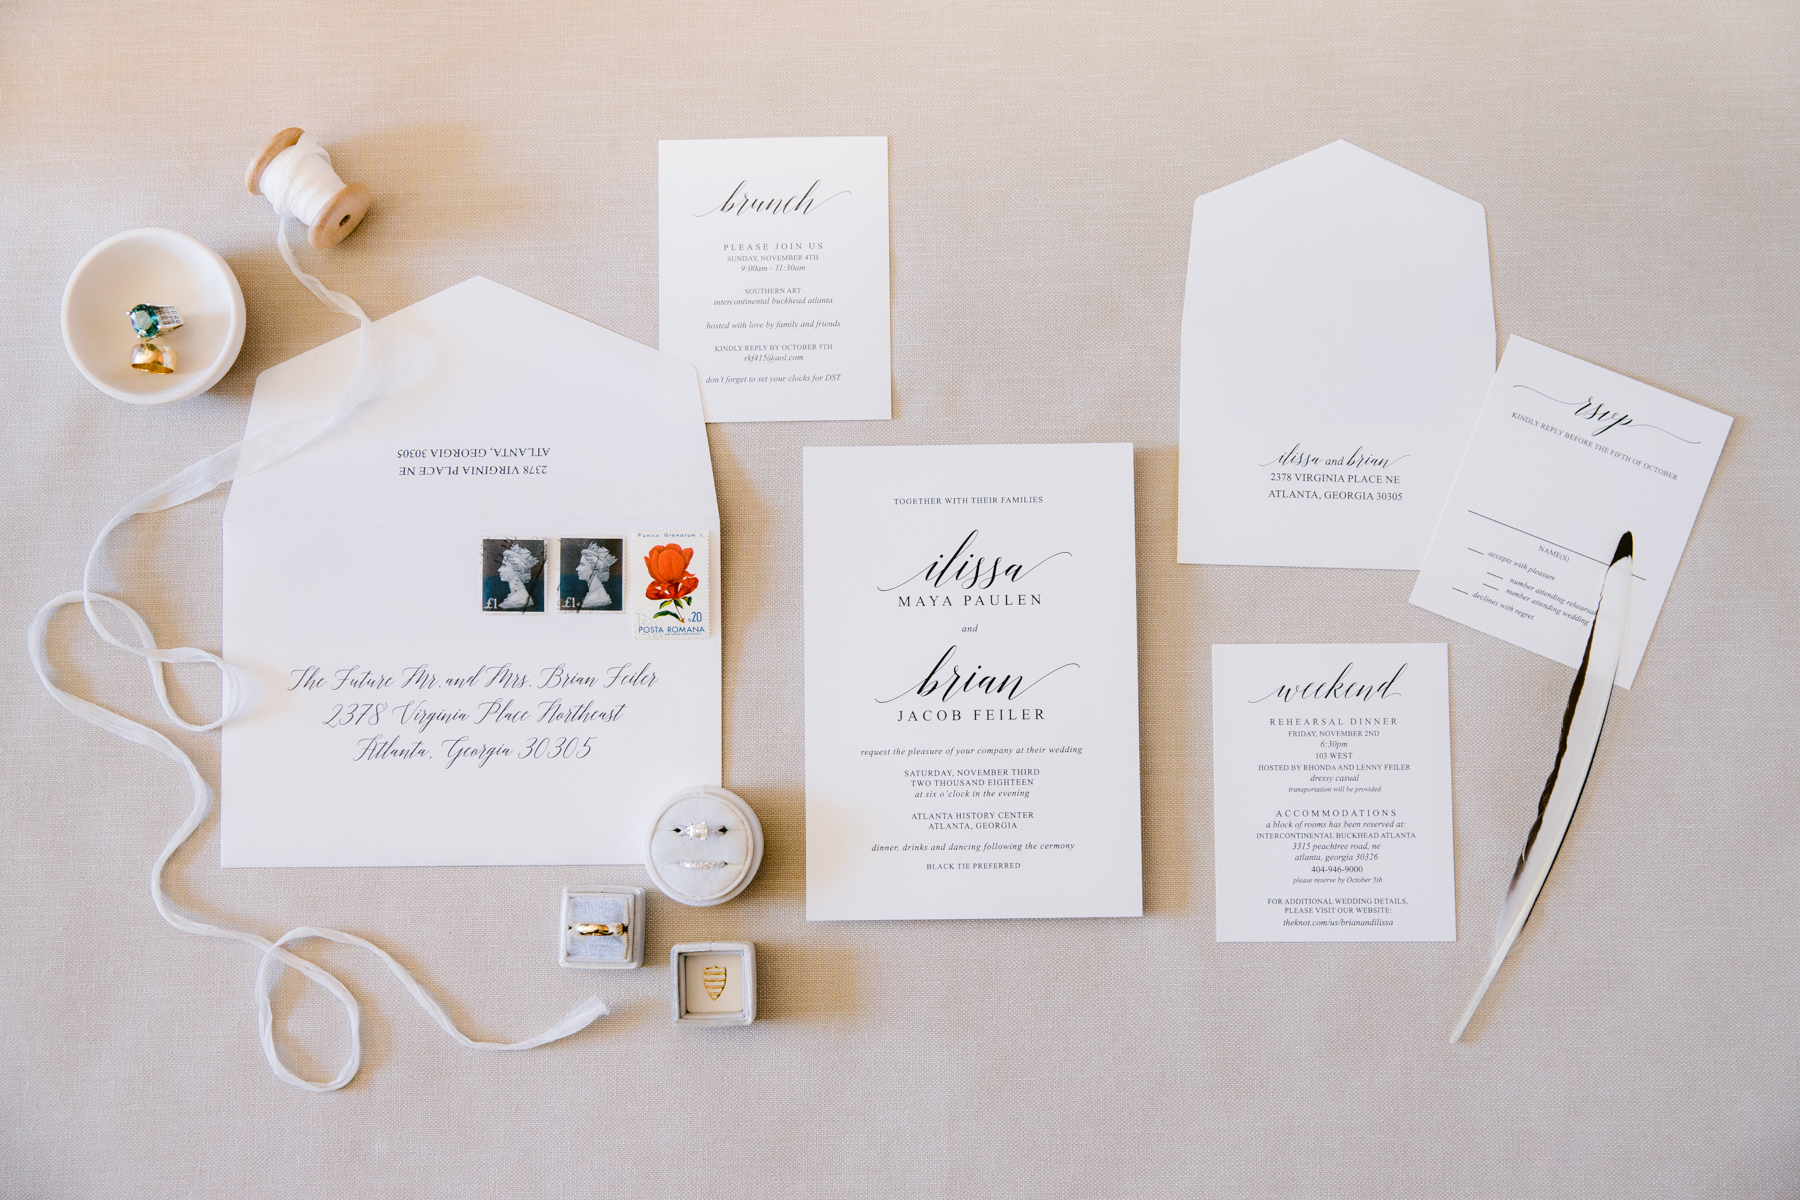 Swan-Mansion-Wedding-0001